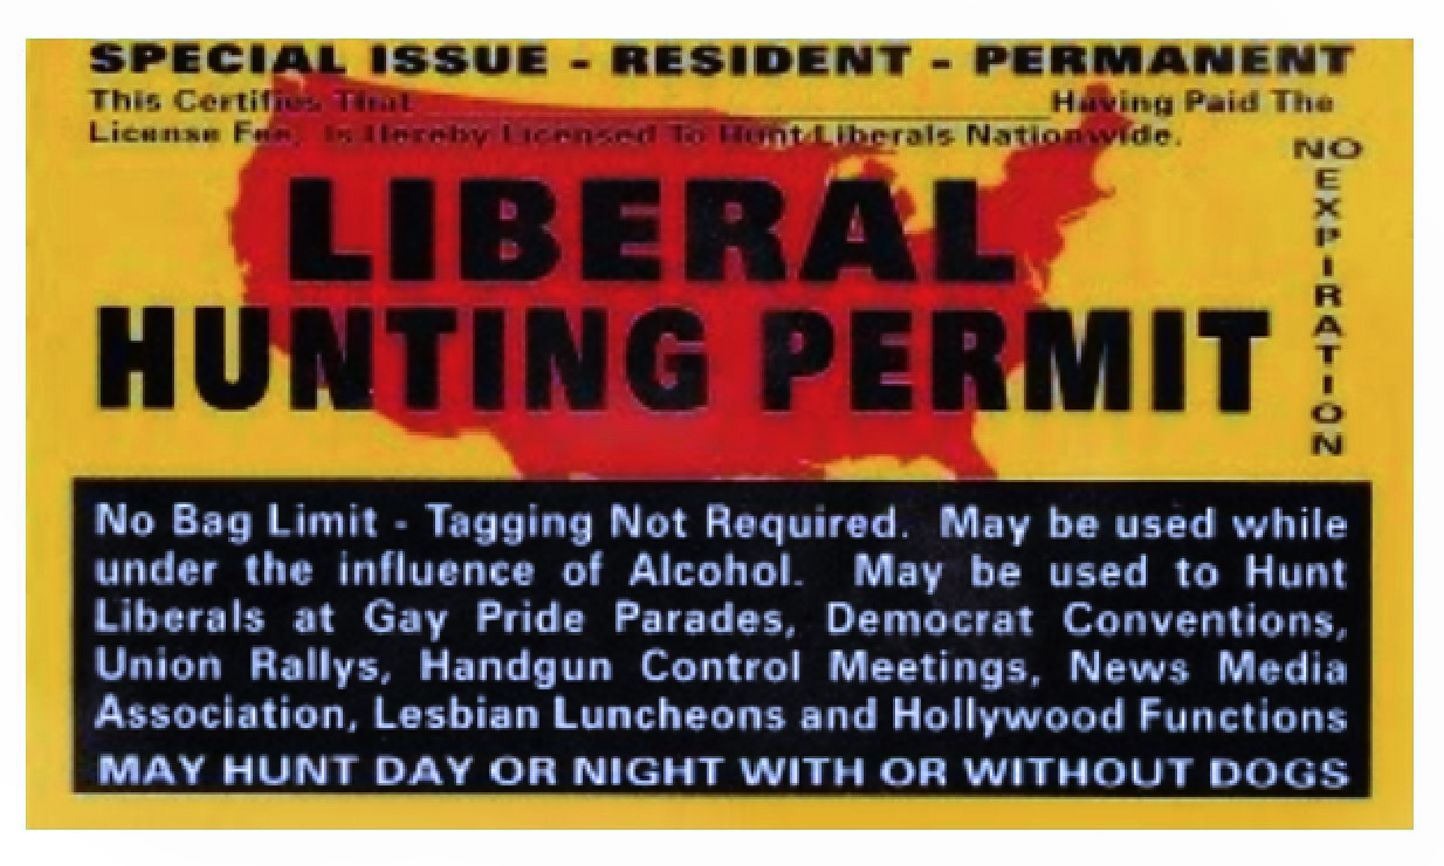 A meme that depicts a permit to hunt democrata and liberals